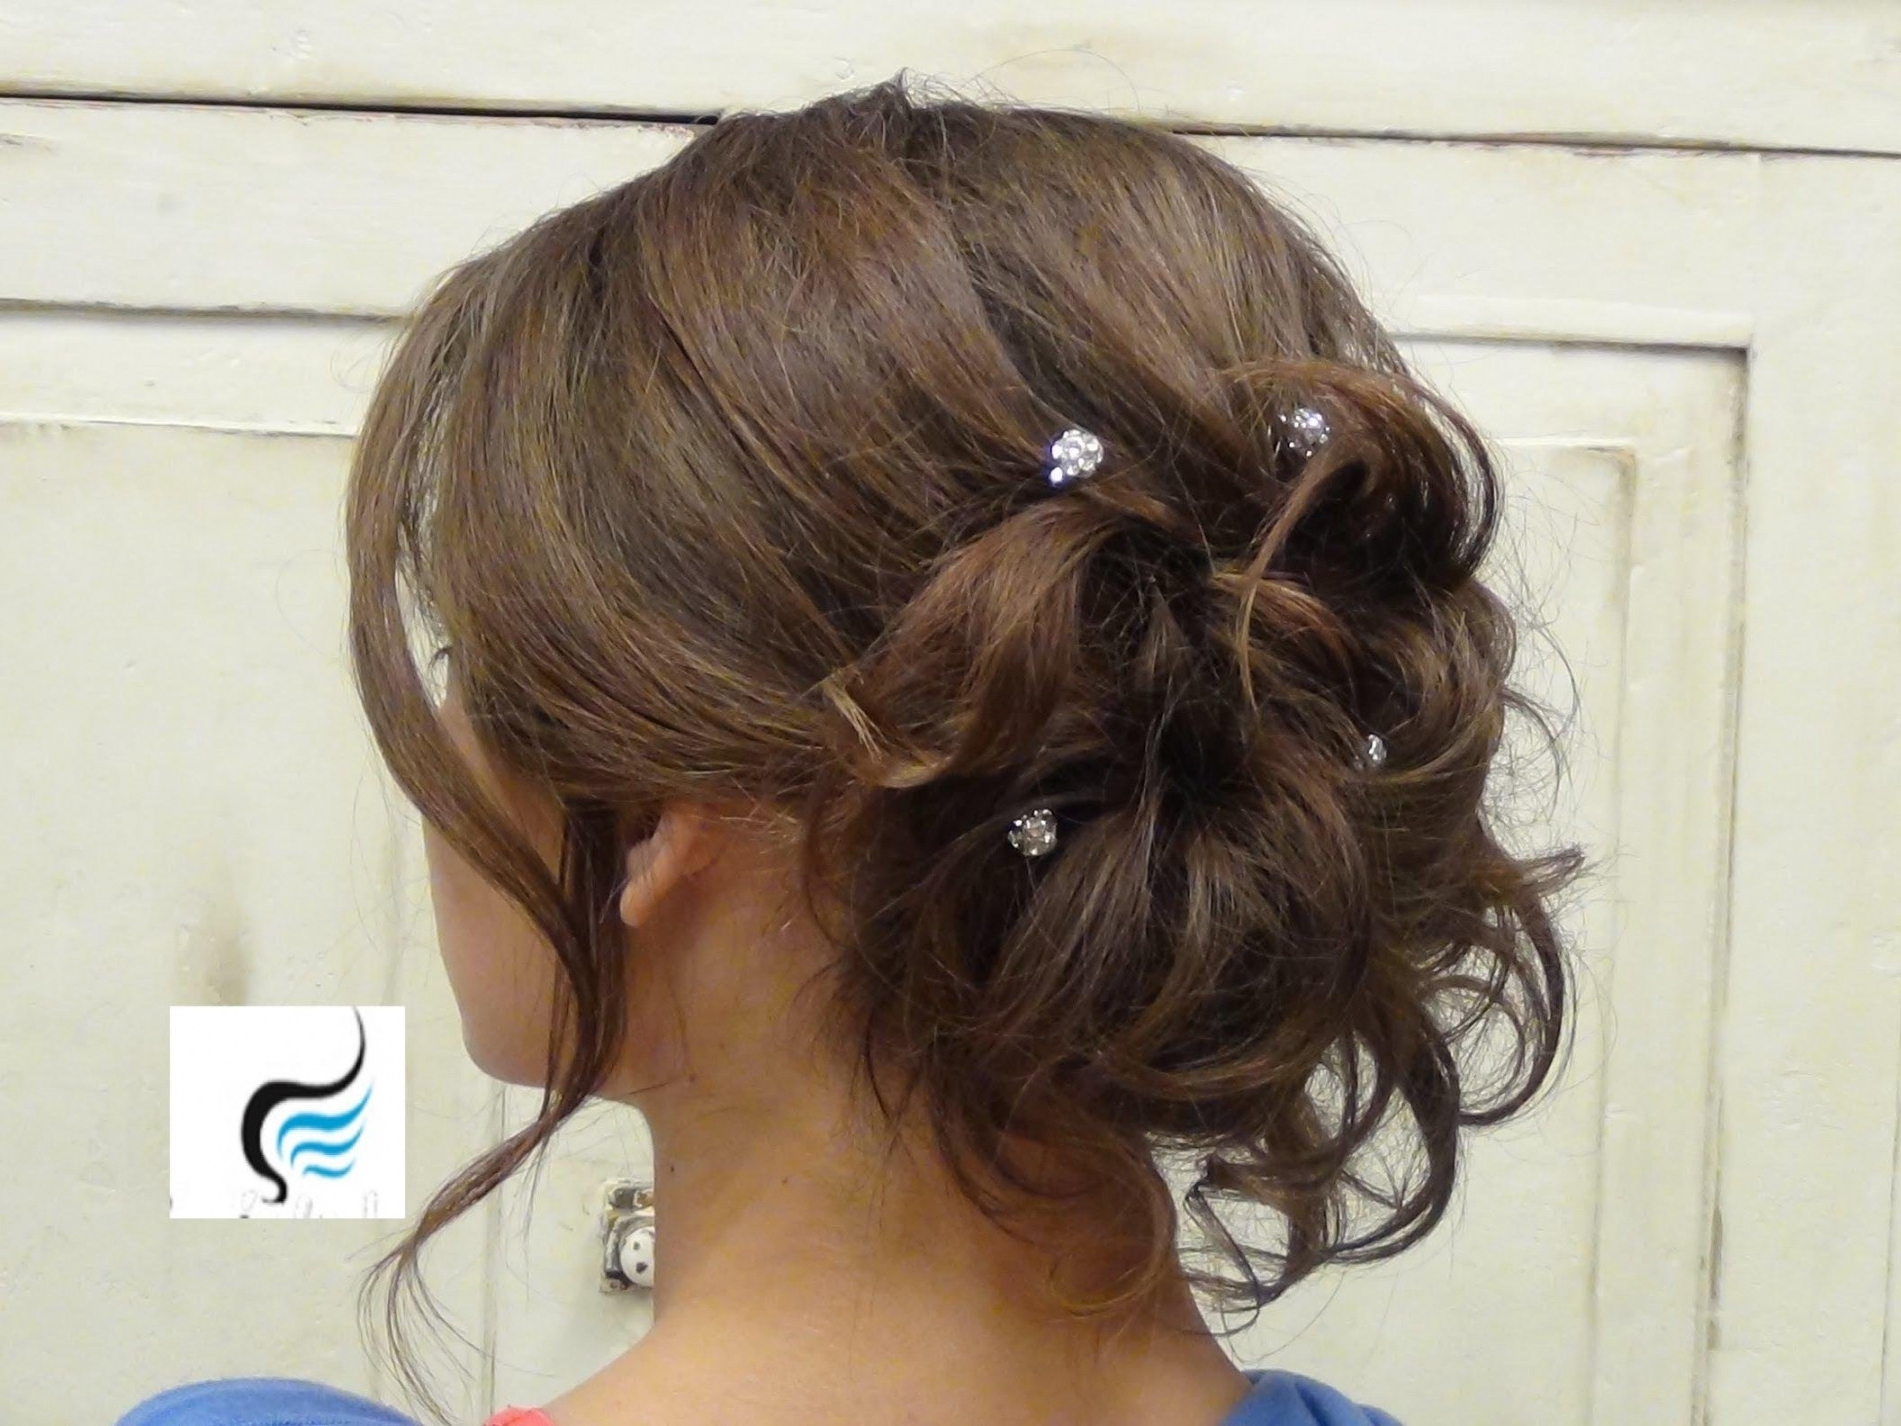 Soft Hairstyles For Weddings Unique Soft Curled Updo For Long Hair Intended For Soft Updos For Long Hair (View 14 of 15)